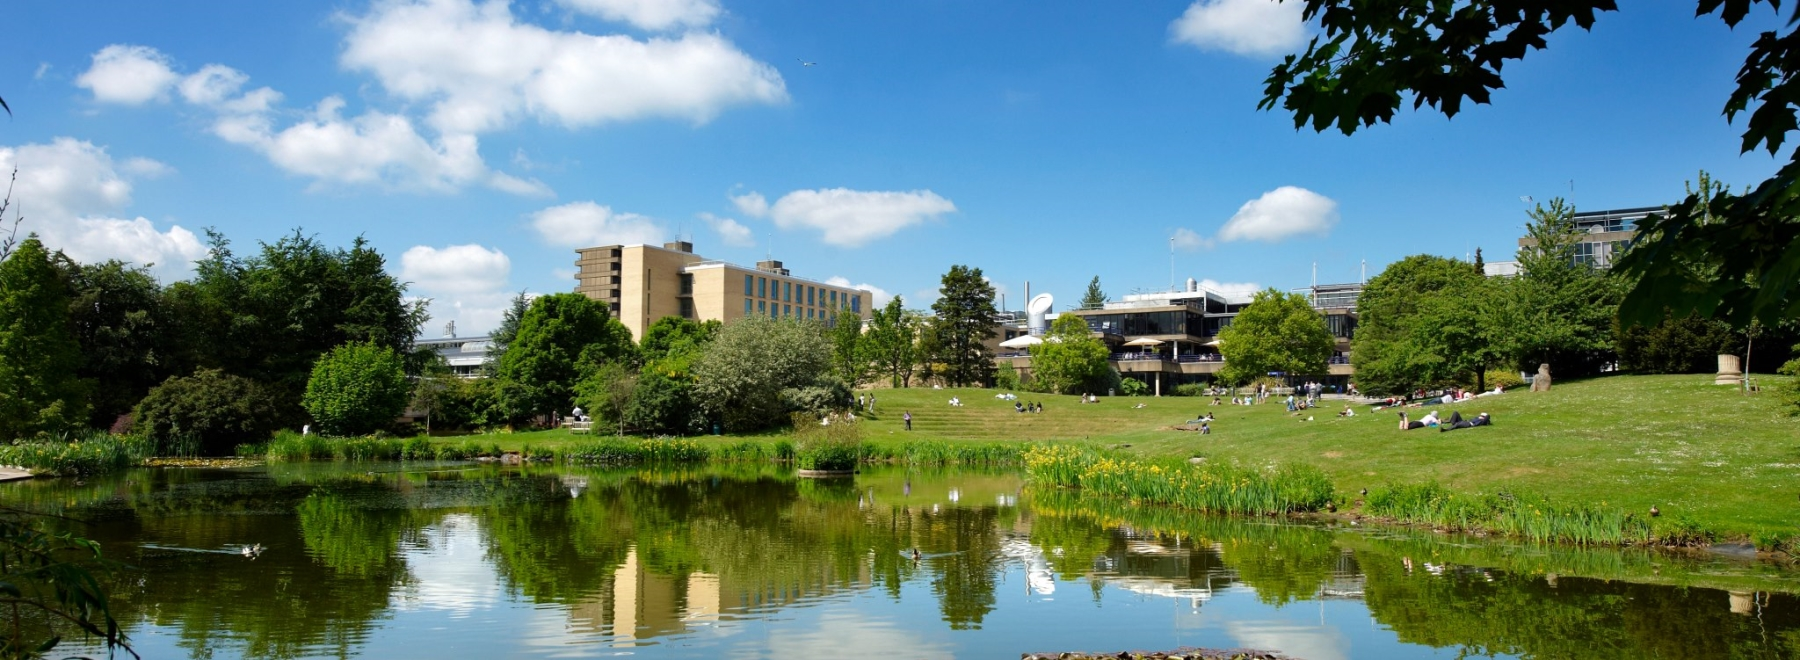 University of Bath image